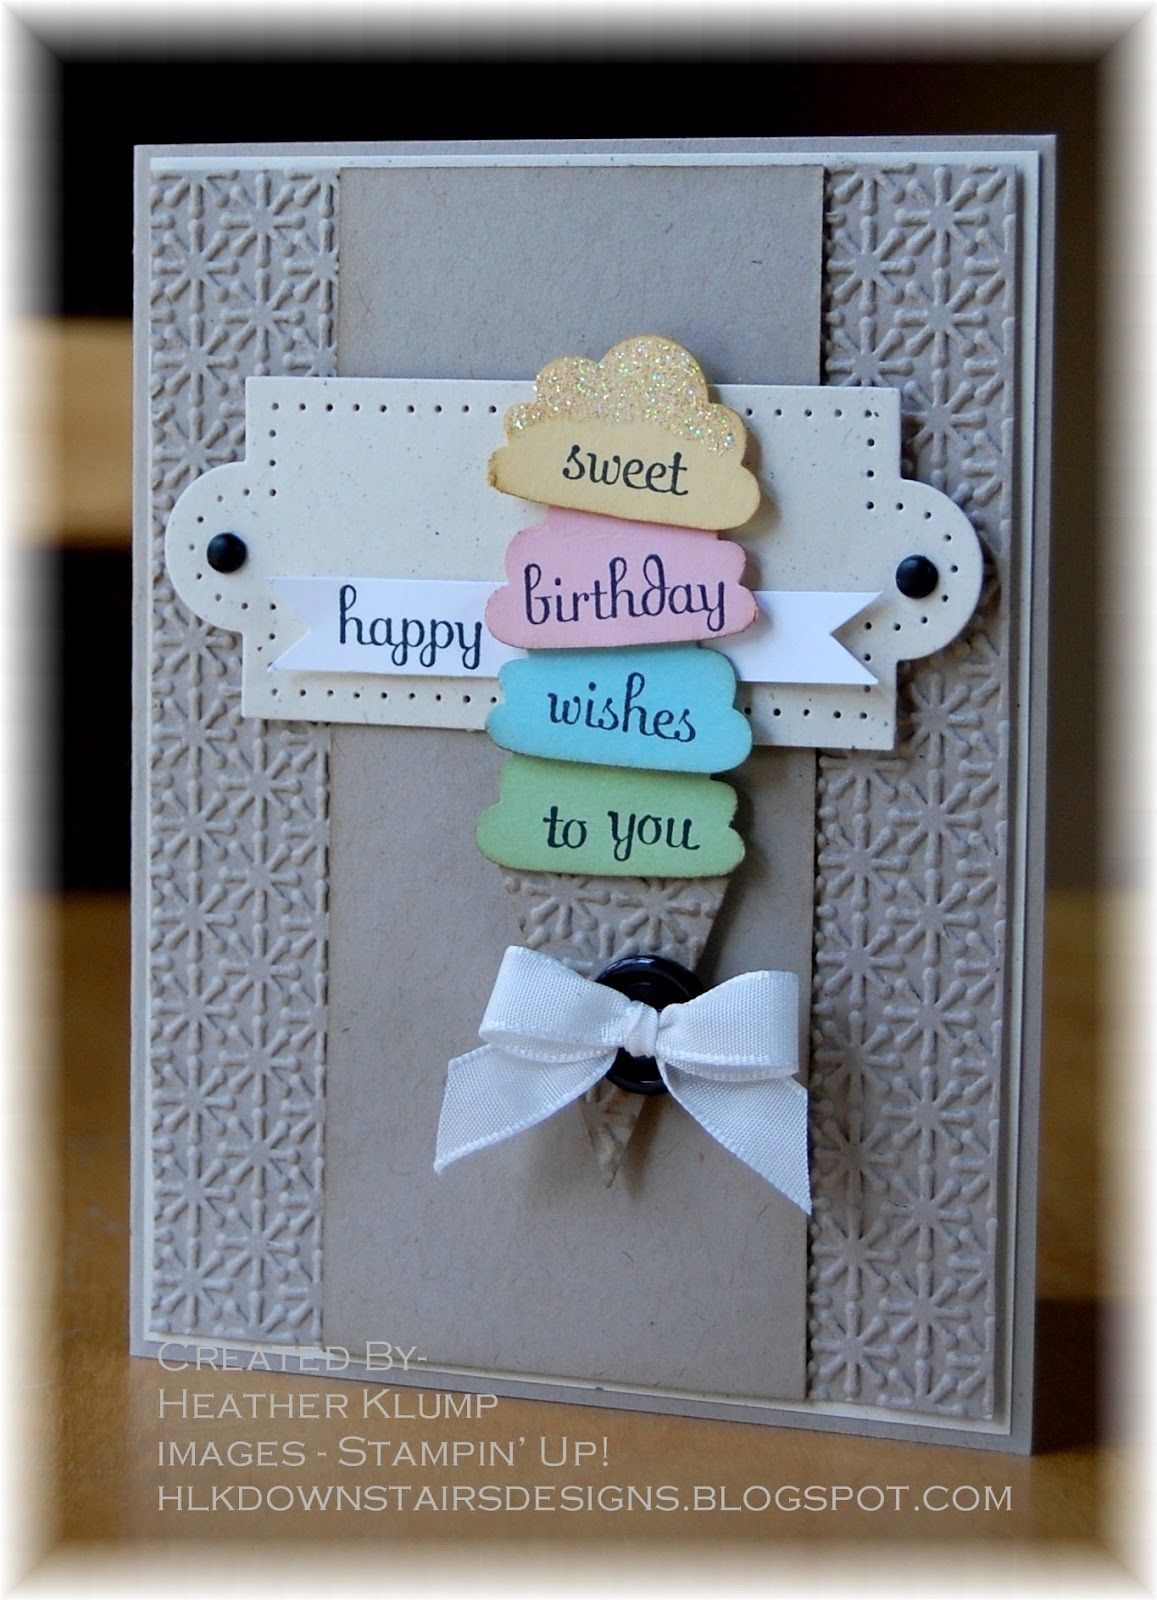 Downstairs Designs With Images Birthday Cards Embossed Cards